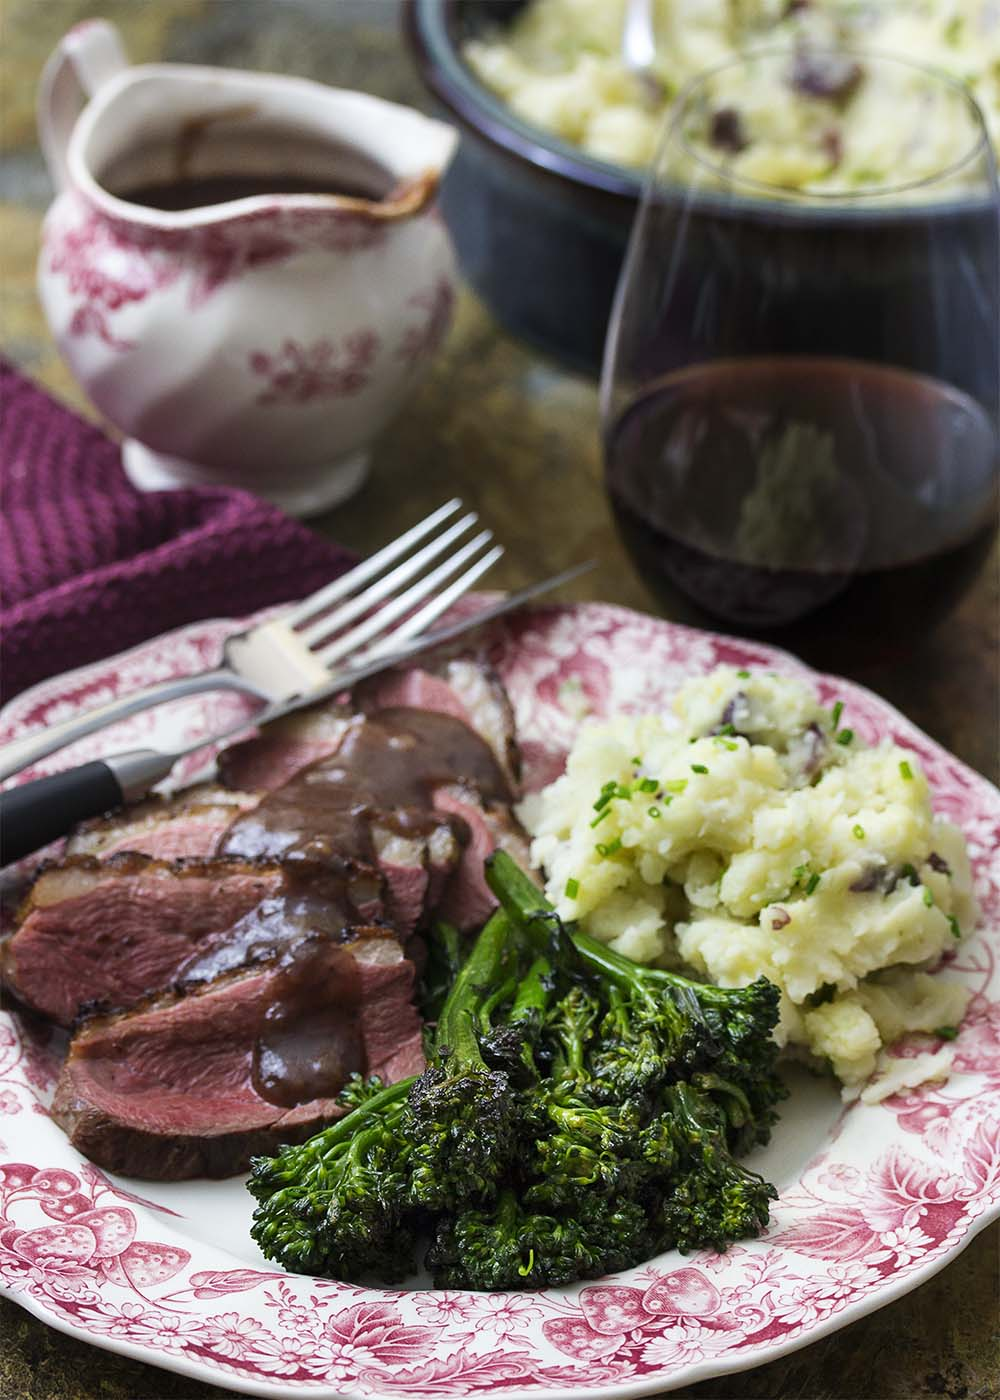 Crispy, seared duck breast is paired with a sweet and spicy port cherry sauce and tender broccolini sauteed in the duck fat for this romantic dinner menu. | justalittlebitofbacon.com